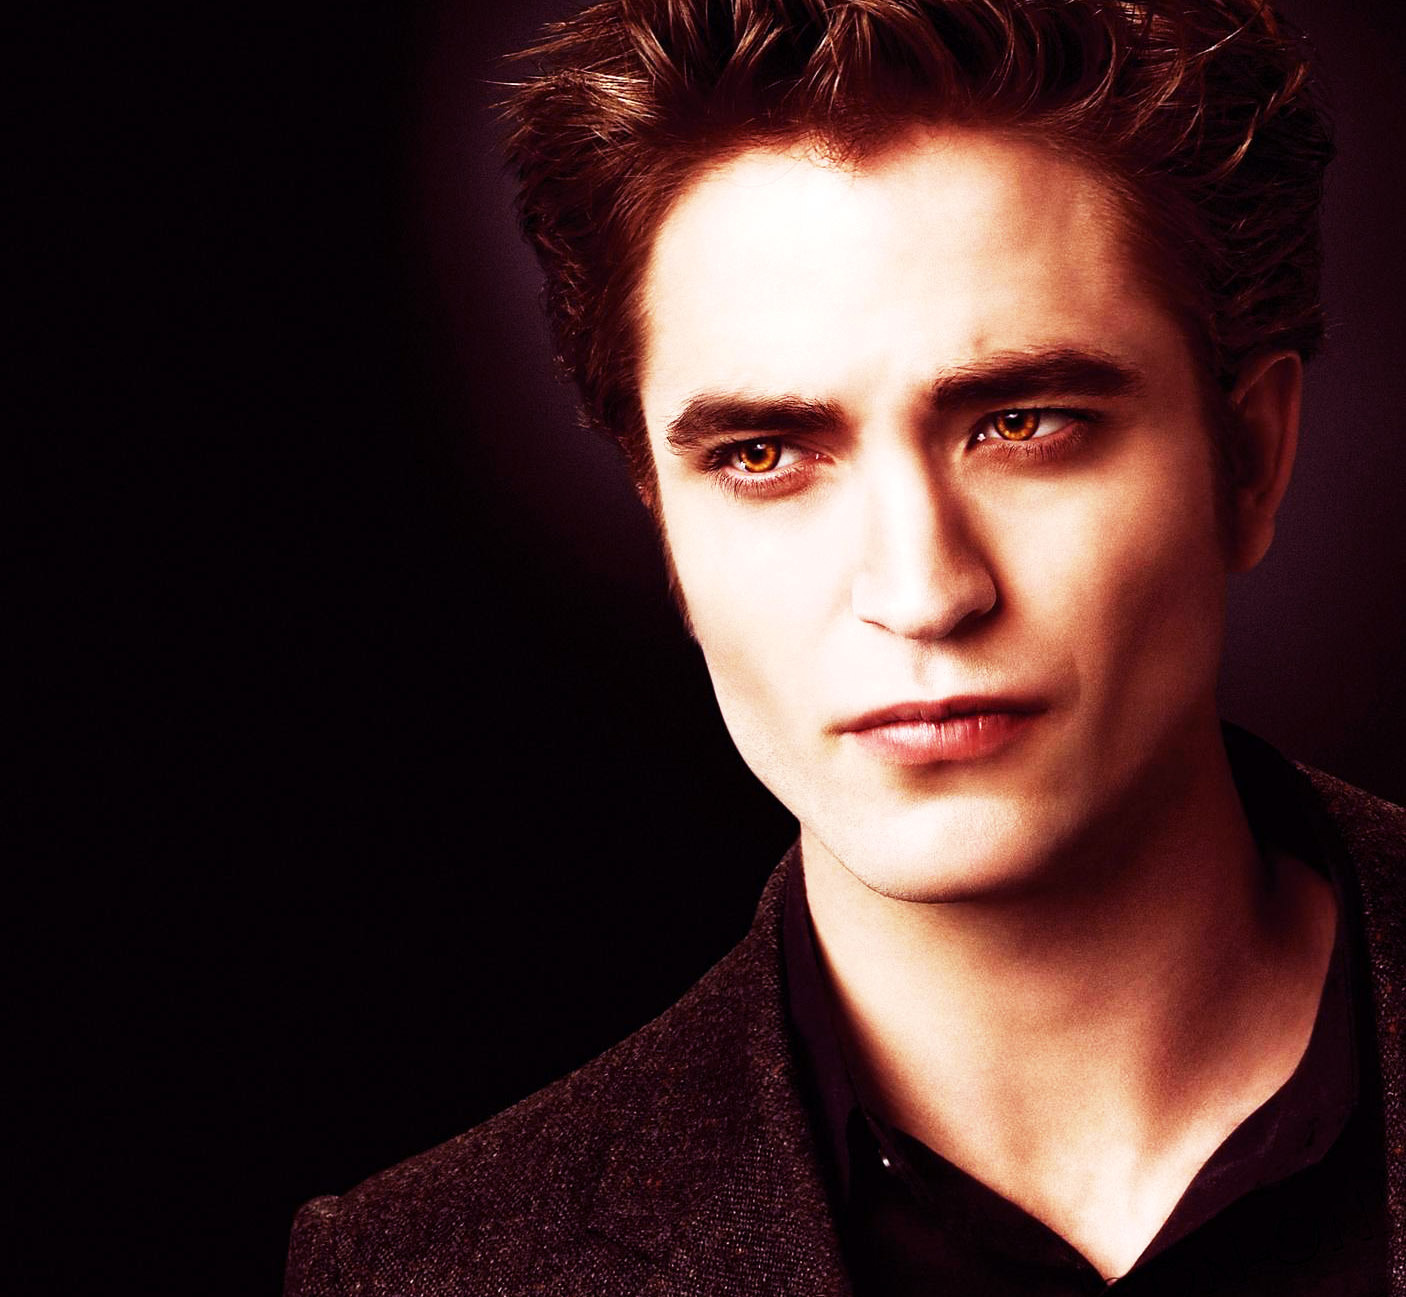 Edward New Moon Edited Twilight Series Photo 8477264